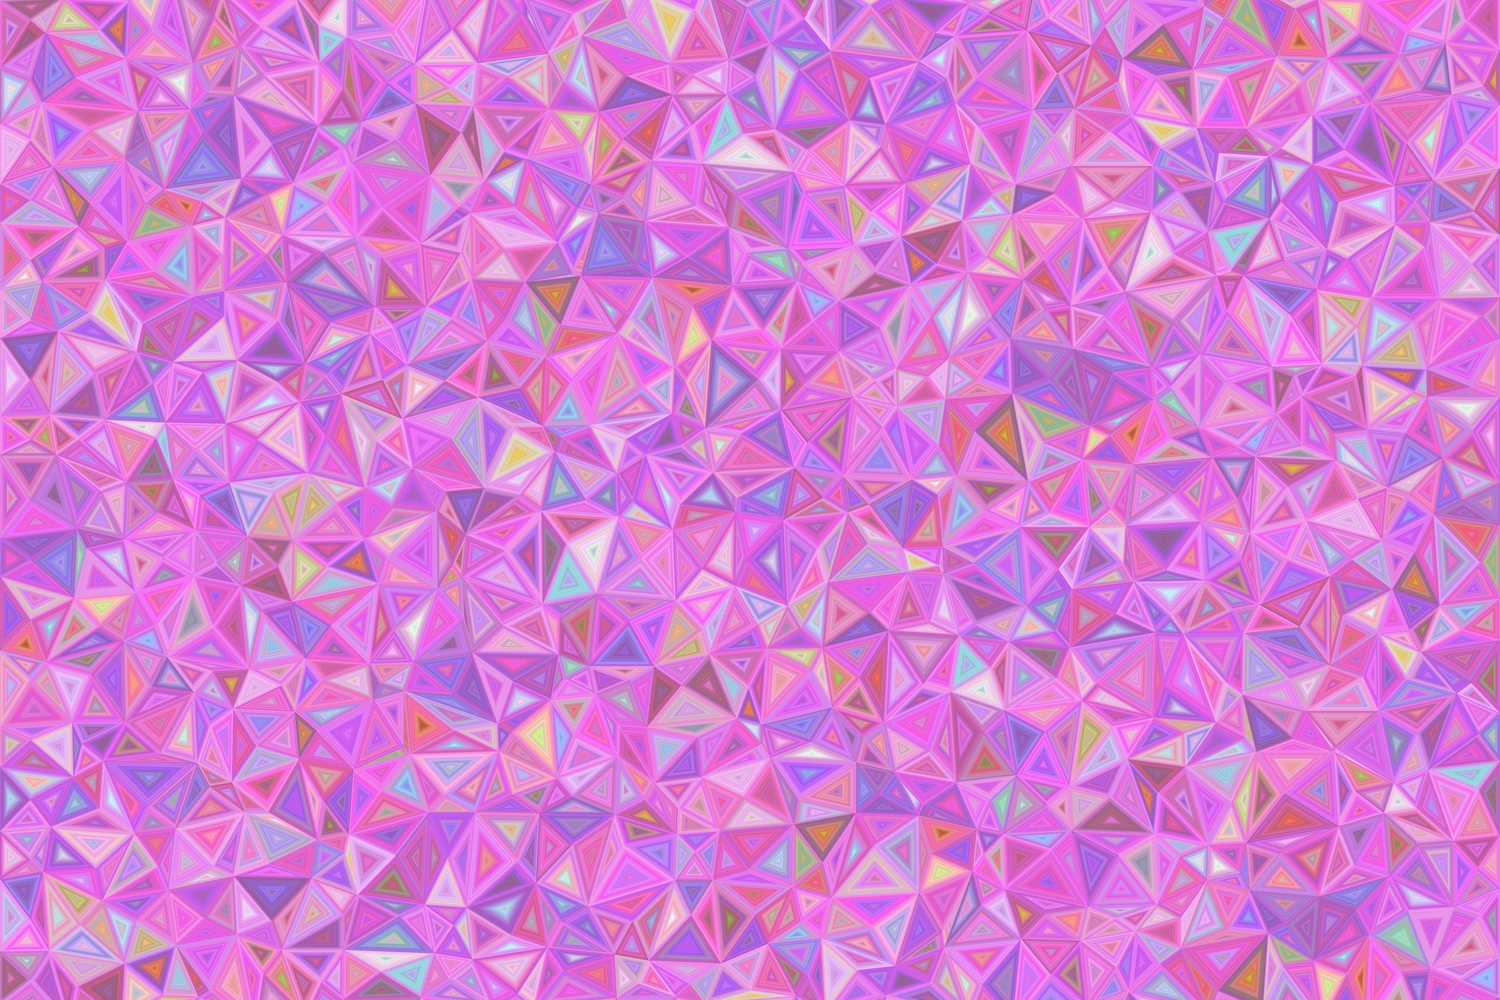 50 Colorful Triangle Backgrounds example image 3